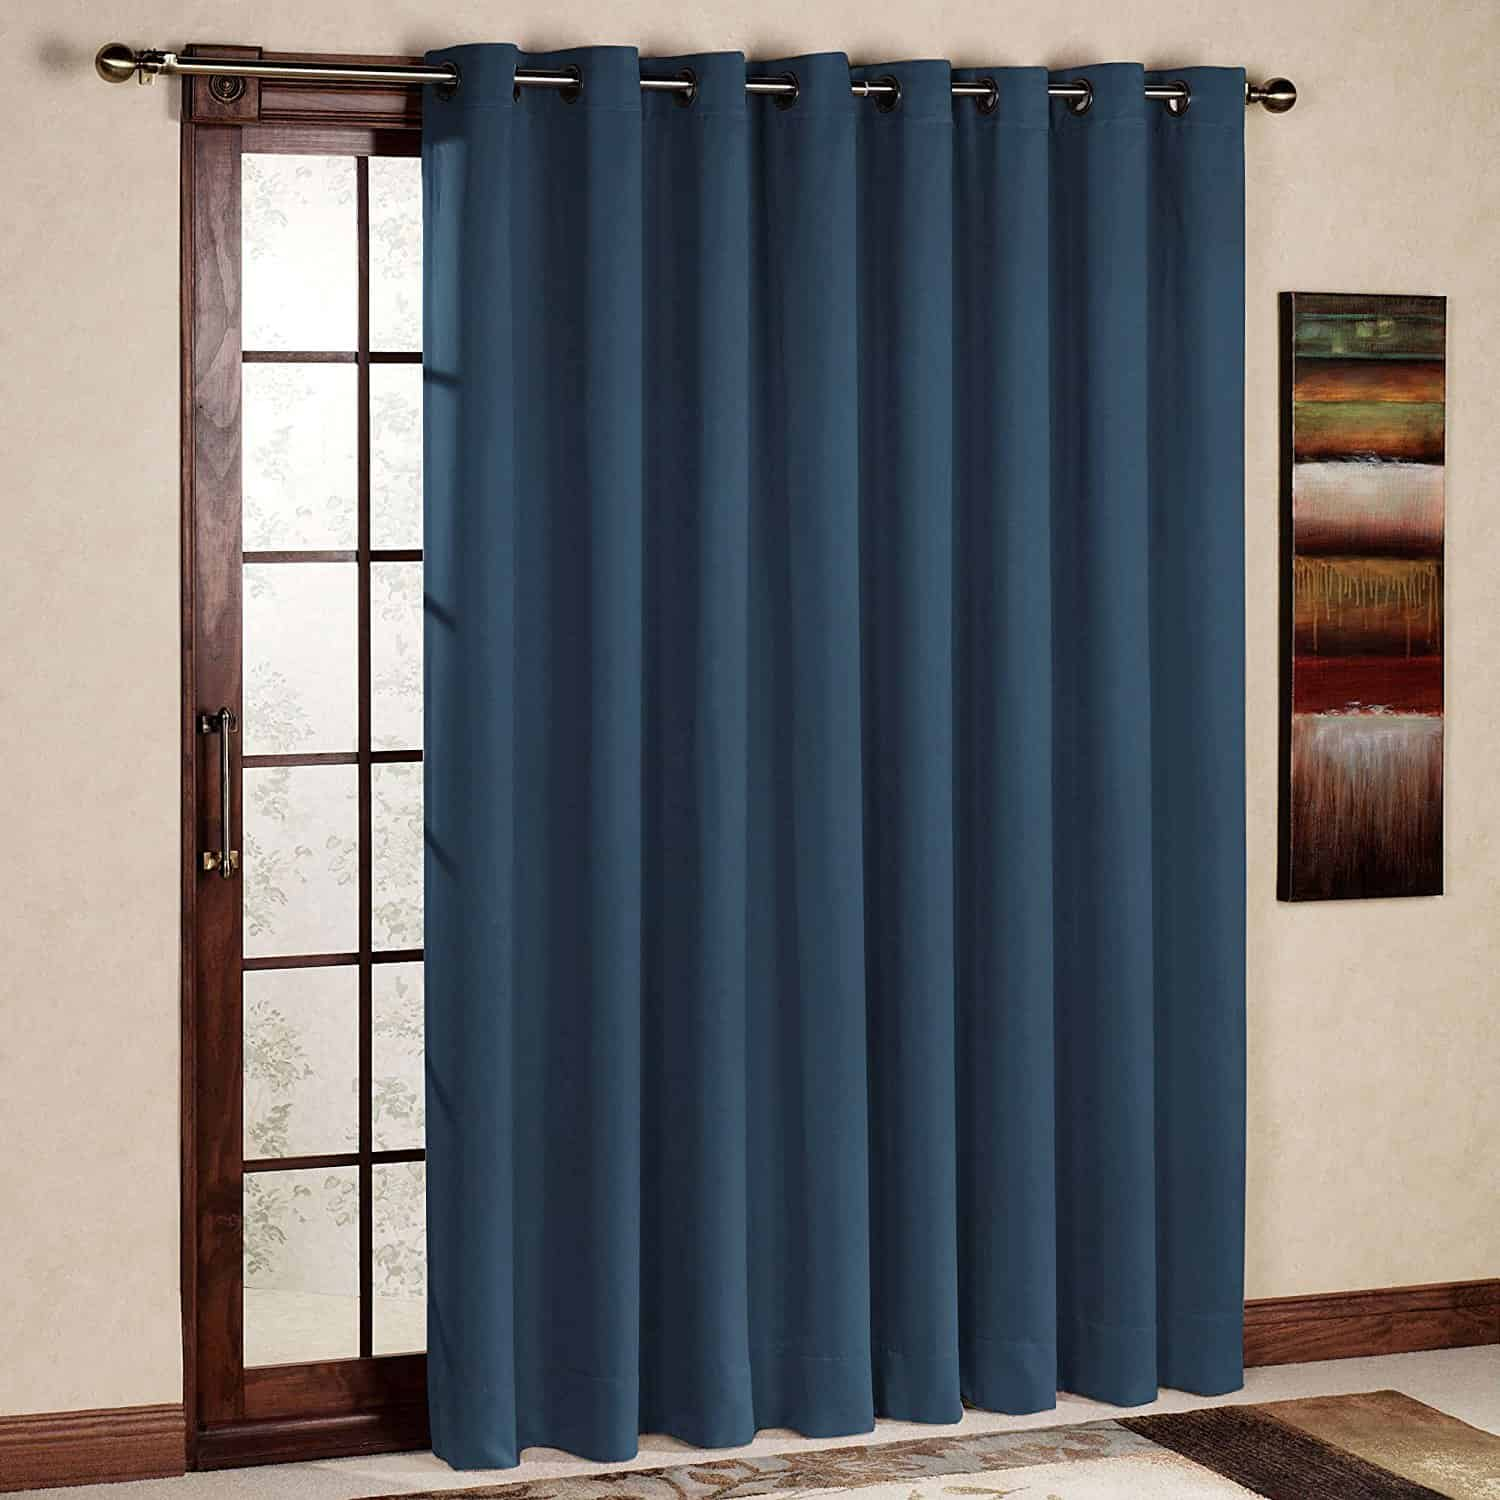 RHF Wide Thermal Blackout Patio door Curtain Panel, Sliding door curtains Antique Bronze Grommet Top